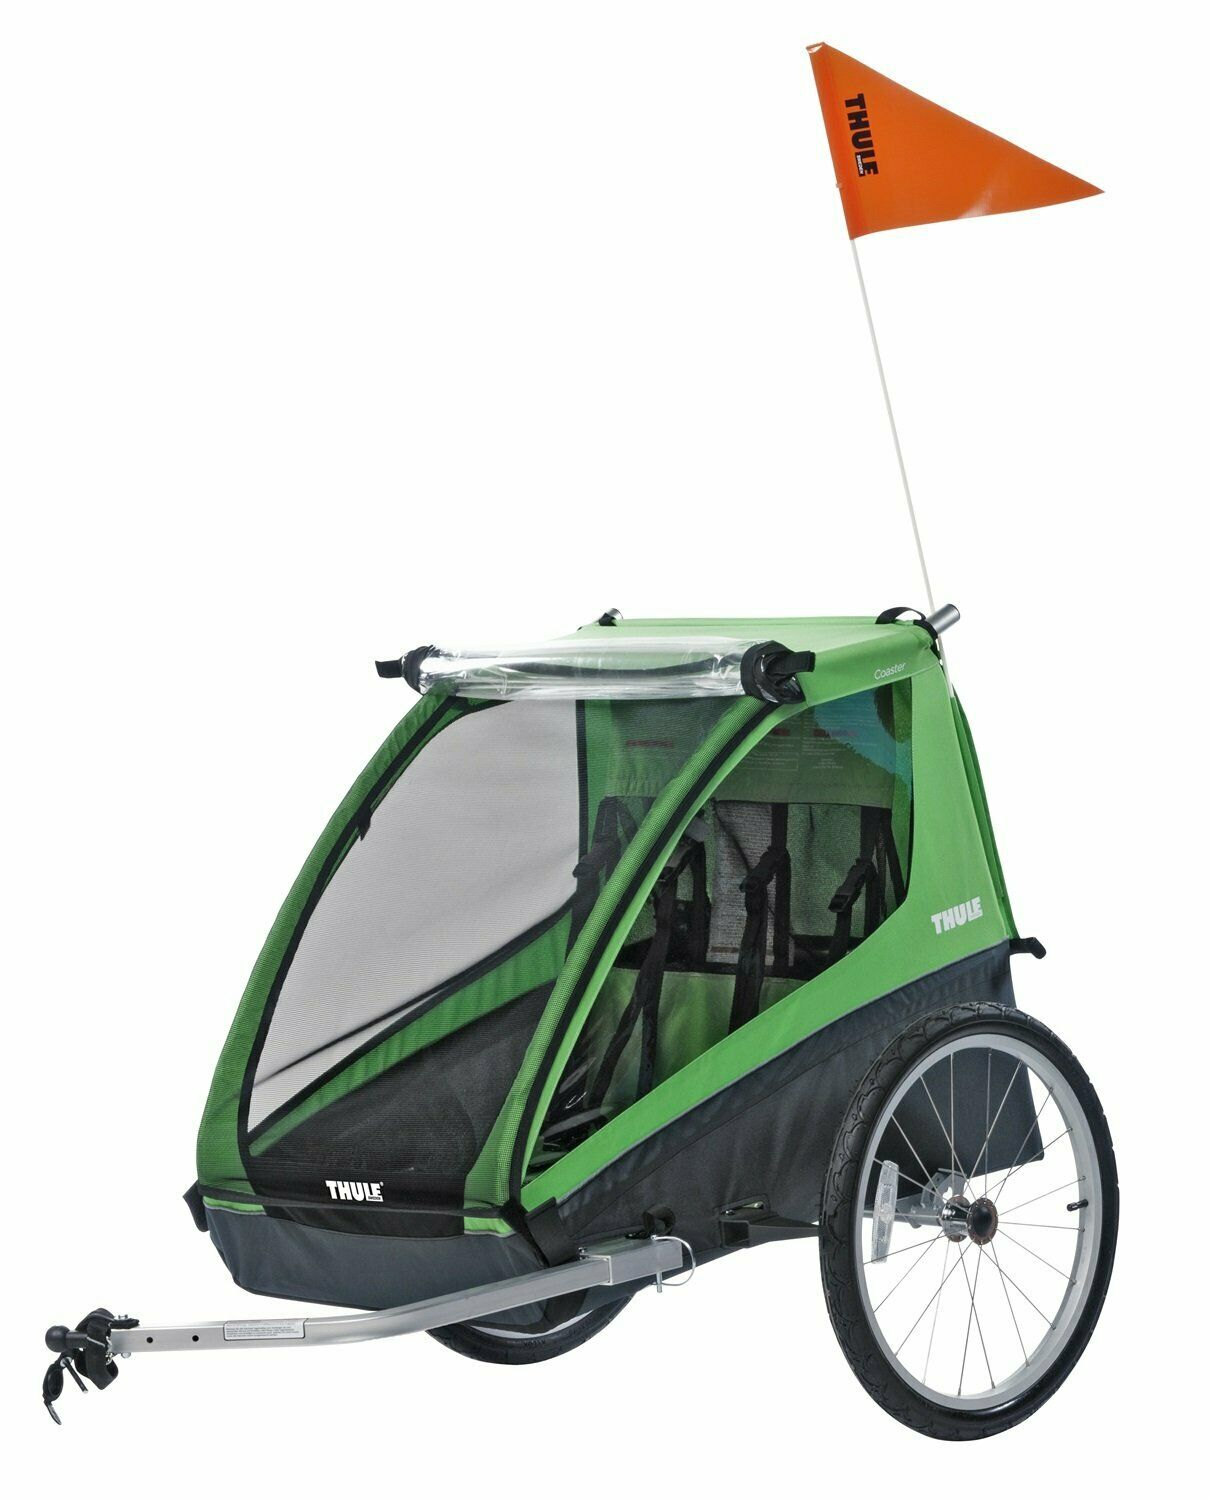 Thule Cadence Two  ld Carrier  Bicycle Trailer  luxury brand